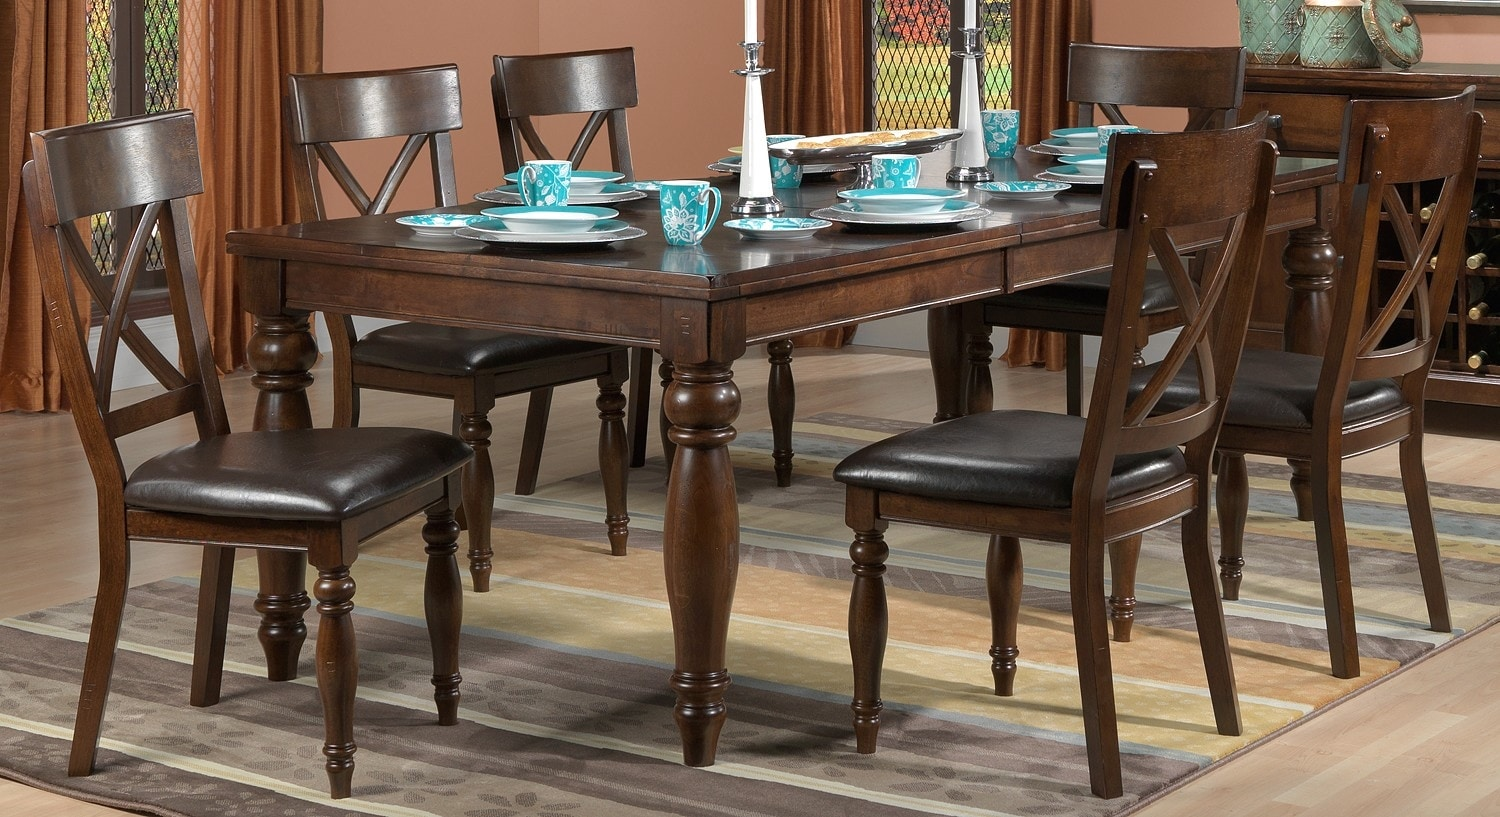 Dining Room Furniture - Kingstown 7-Piece Dining Room Set - Chocolate